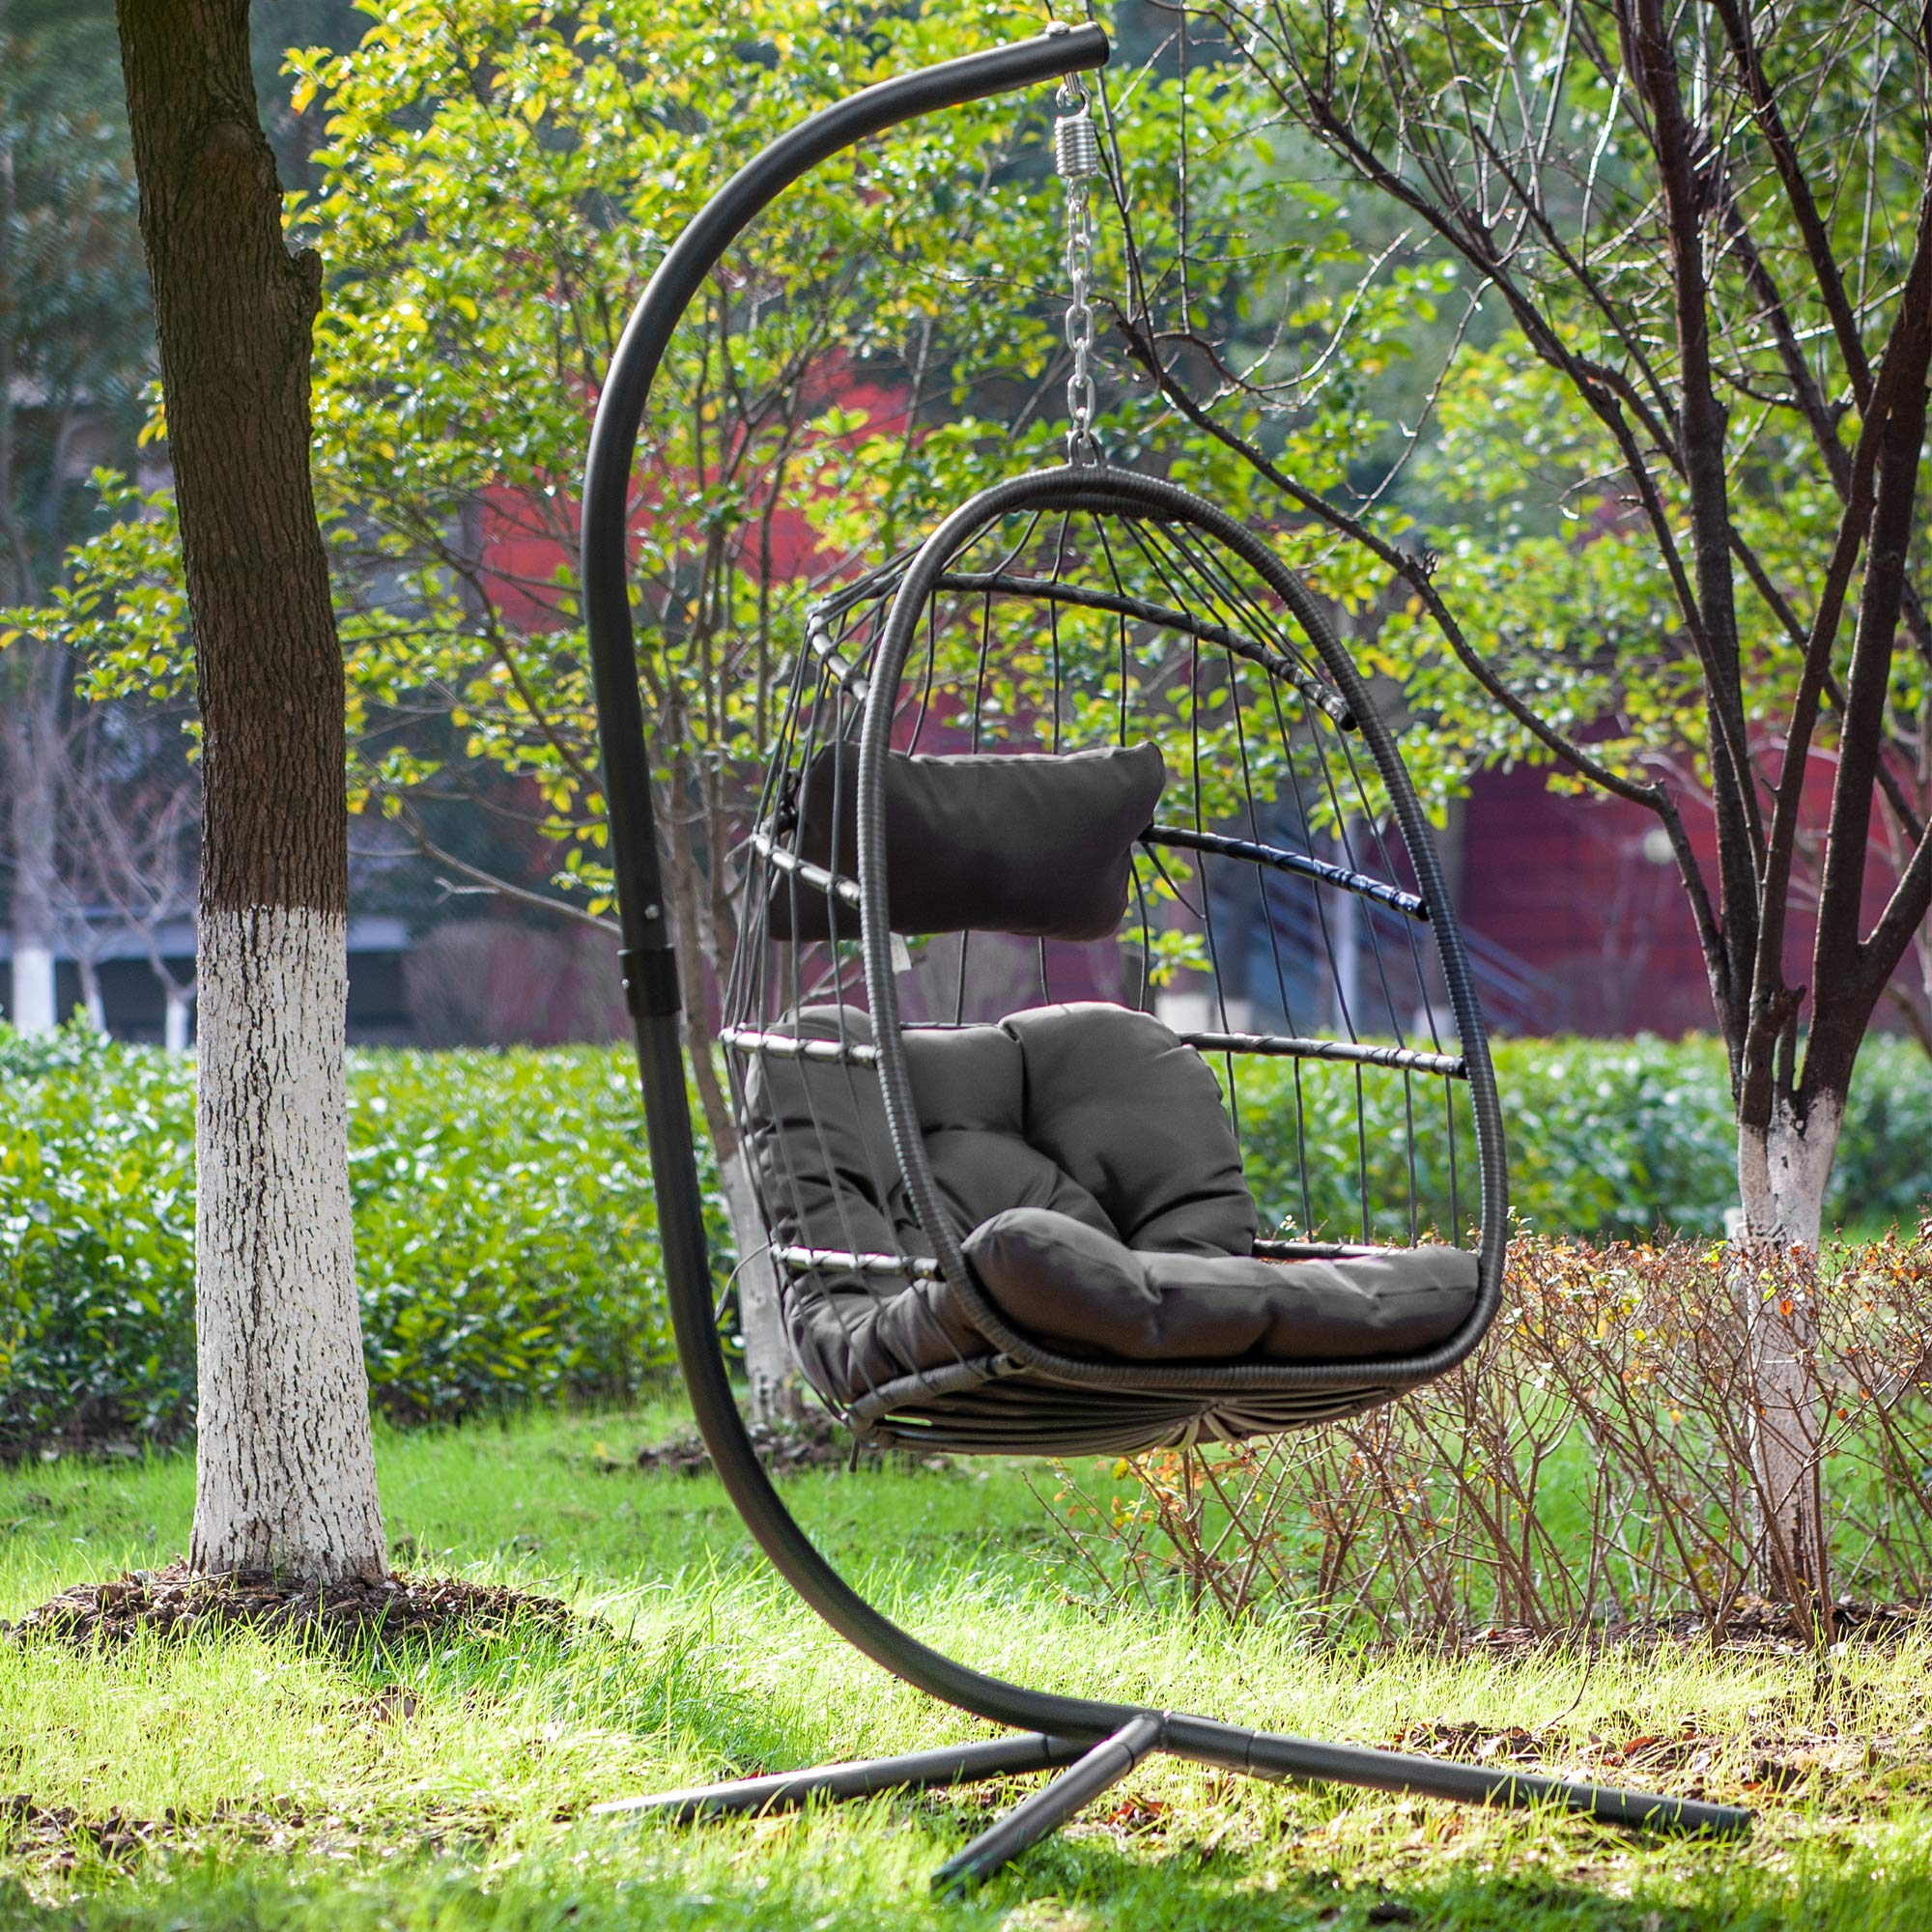 Egg Chair Aluminum Frame Swing Chair In Door Outdoor Hanging Egg Chair Patio Wicker Hanging Chair Hammock Chair With Stand And Uv Resistant Cushion 350 Pound Weight Capacity Dark Grey